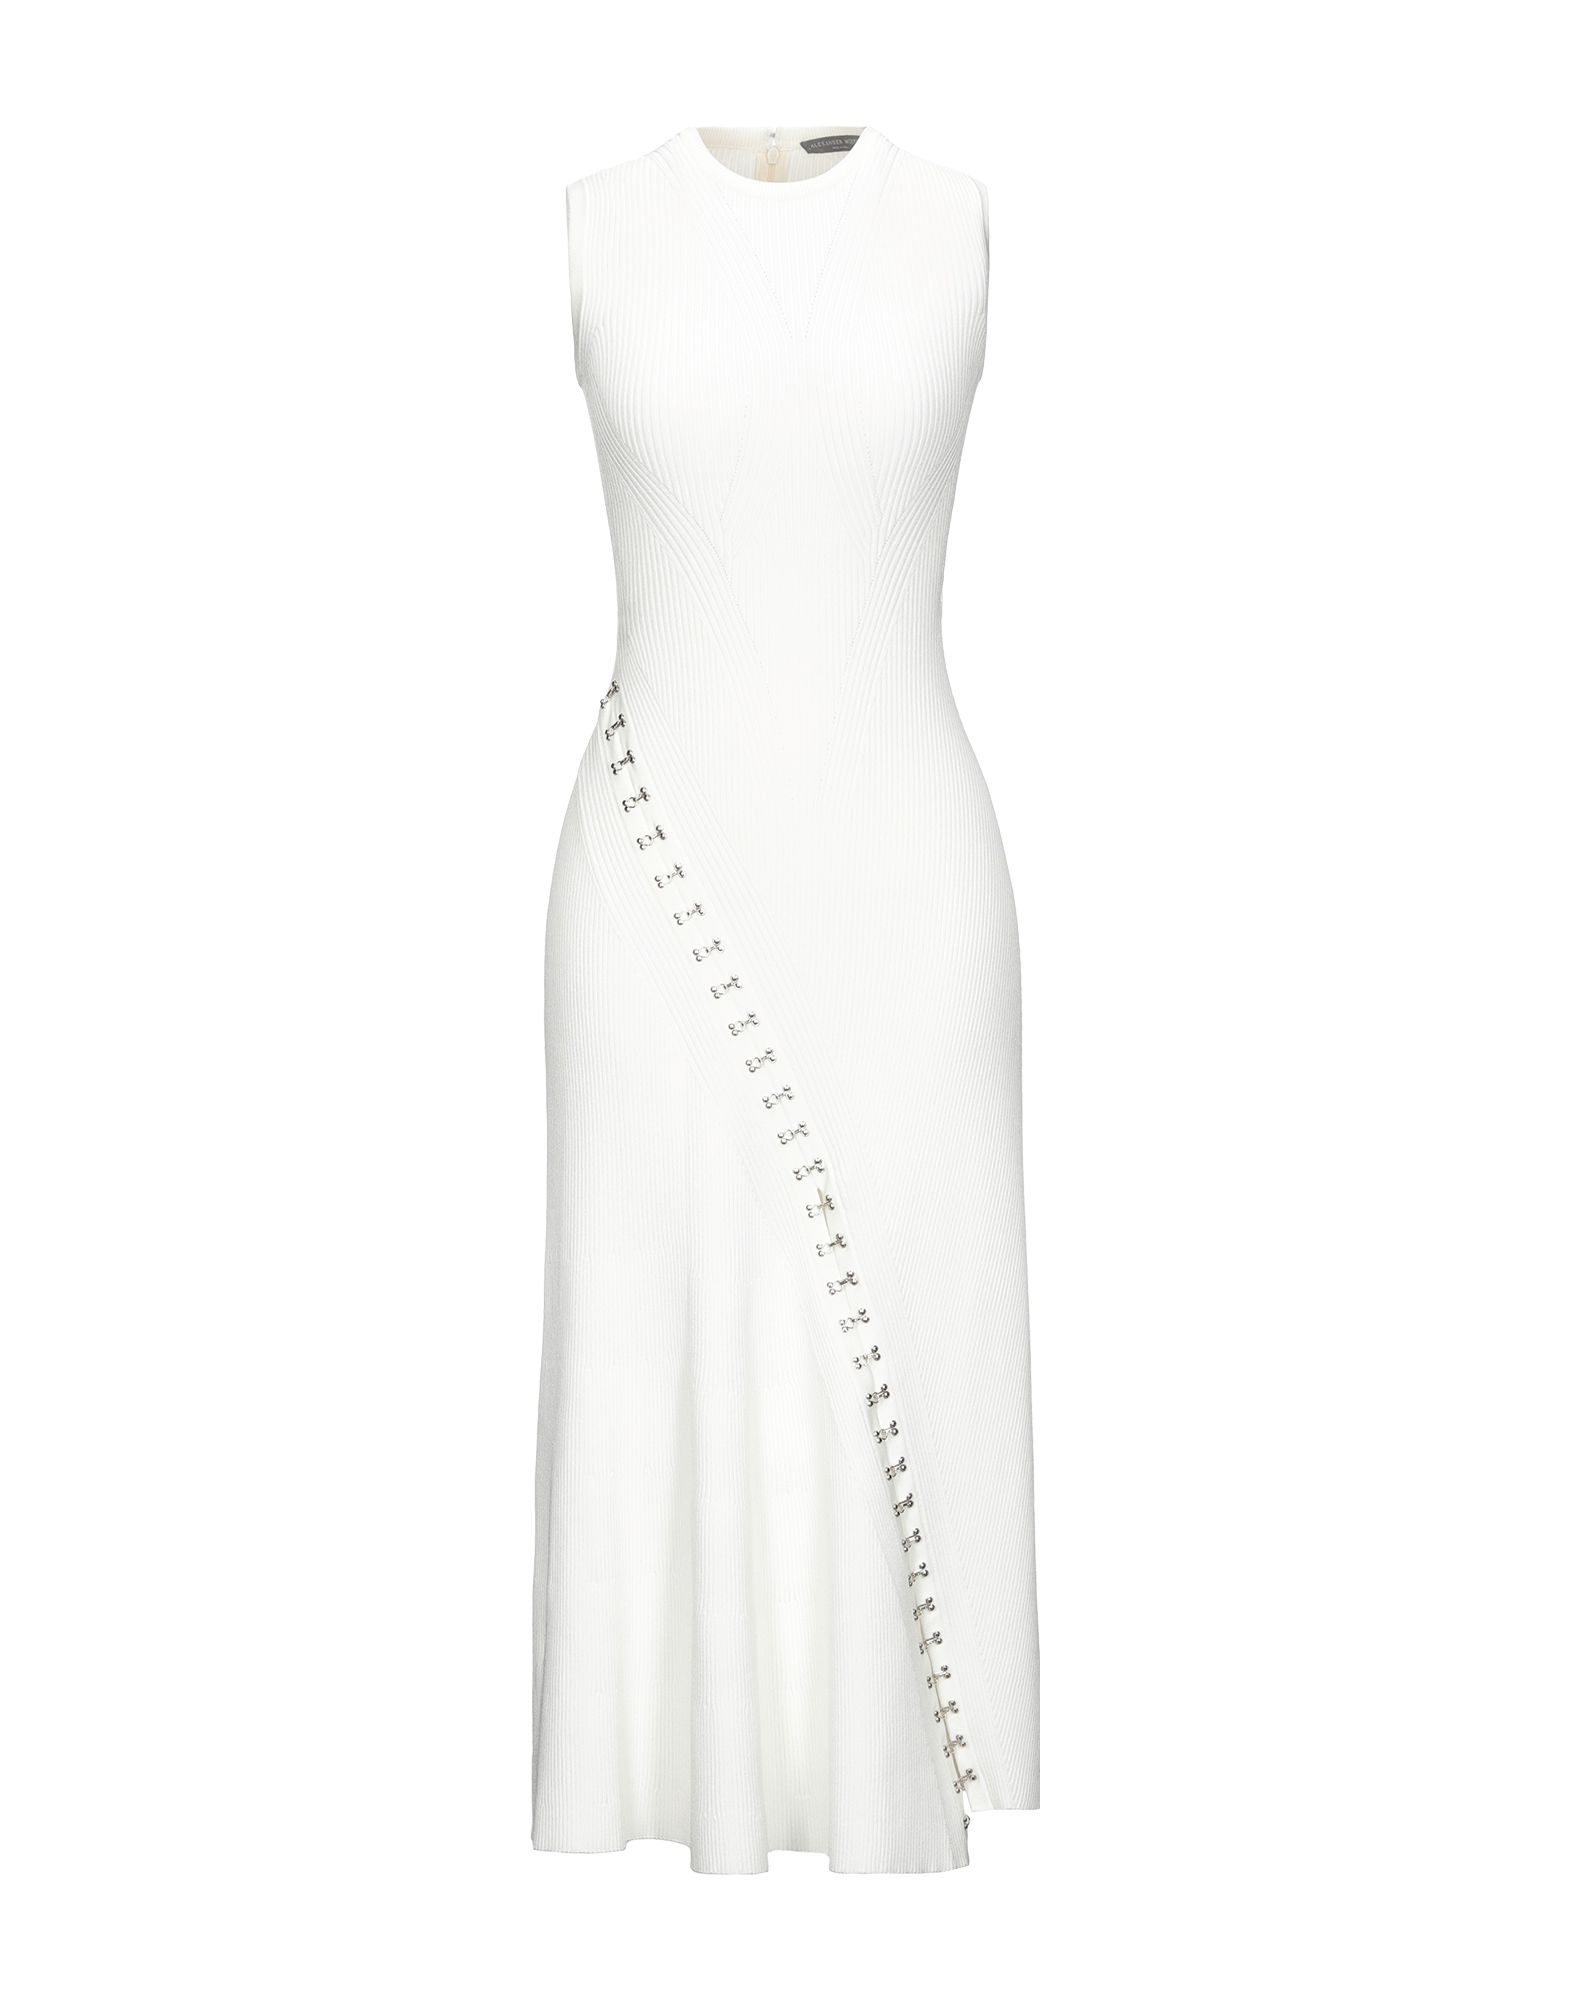 ALEXANDER MCQUEEN 3/4 length dresses. knitted, no appliqués, basic solid color, lightweight knit, round collar, sleeveless, no pockets, rear closure, zipper closure, unlined. 83% Viscose, 17% Polyester, Metal